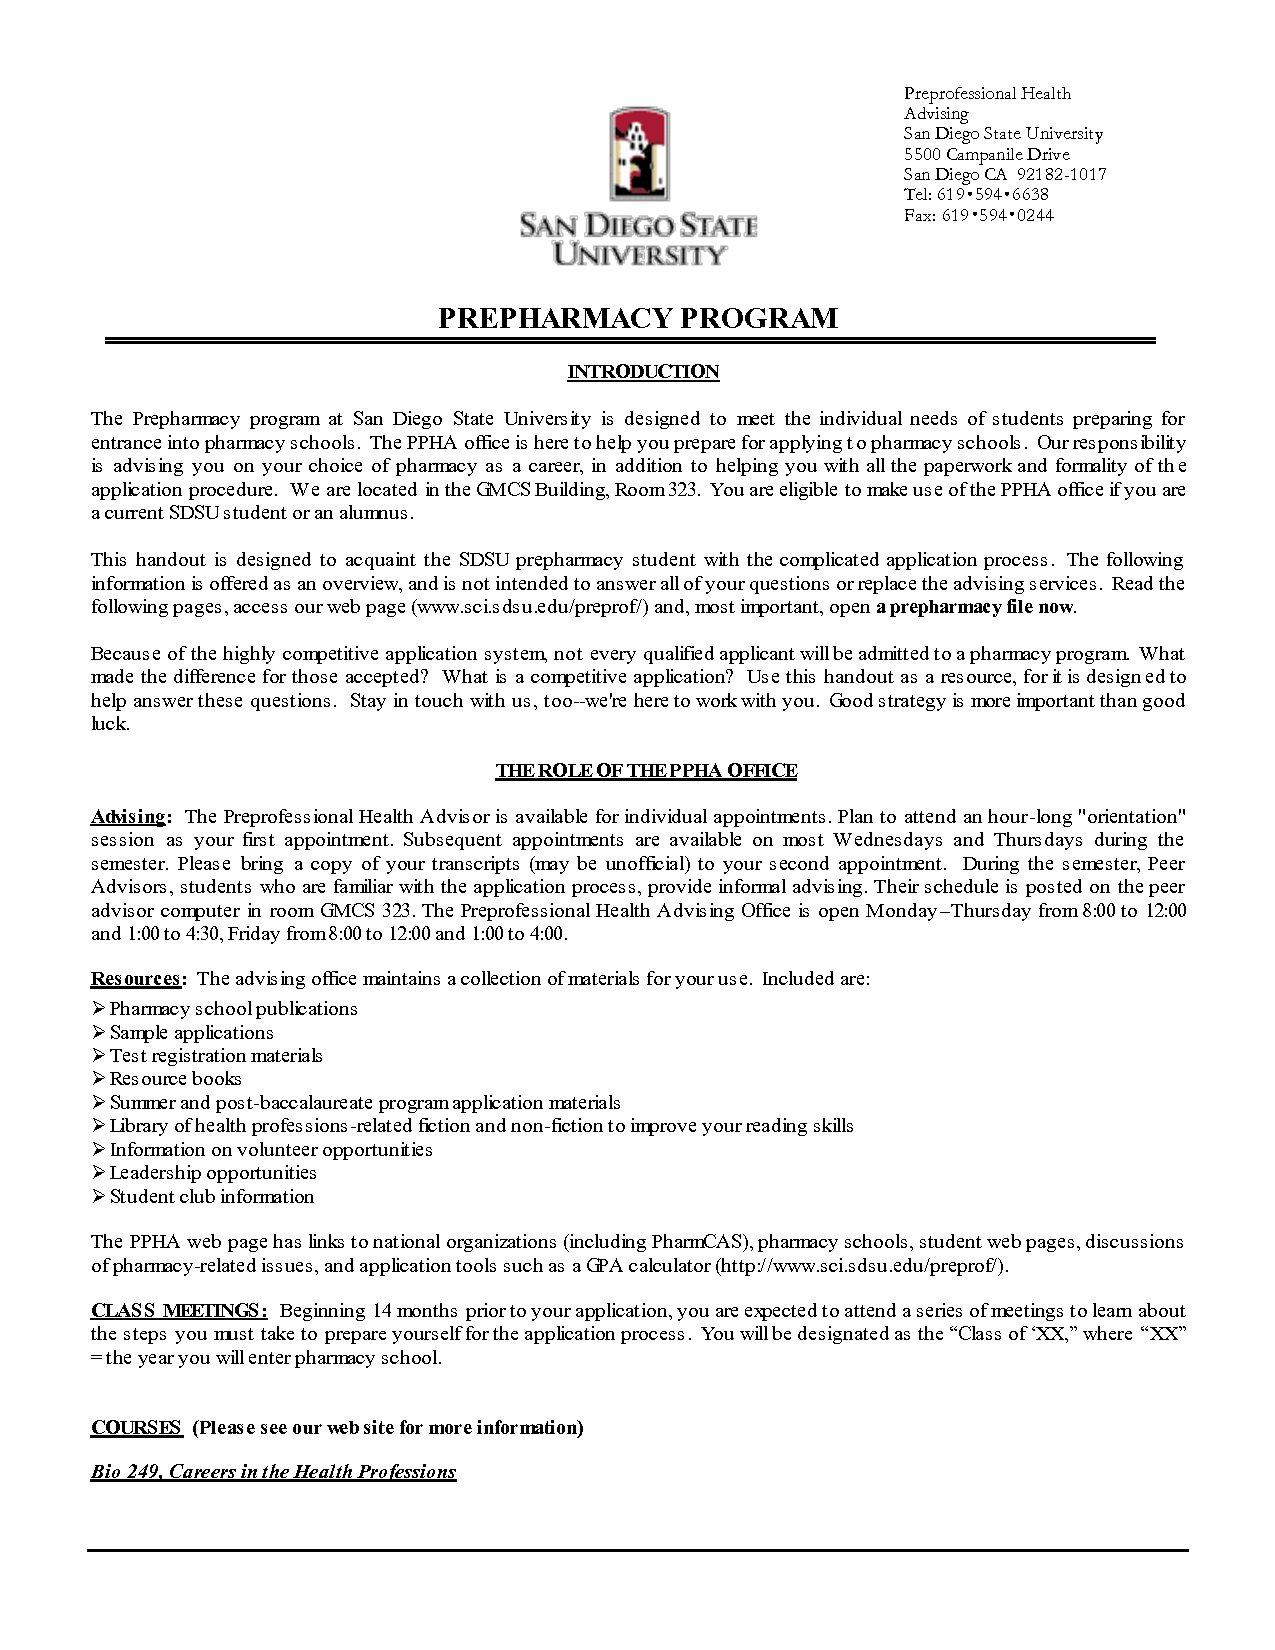 College Recommendation Letter Template - Pharmacy School Essay Sample Law Essay Examples Of Law Essays